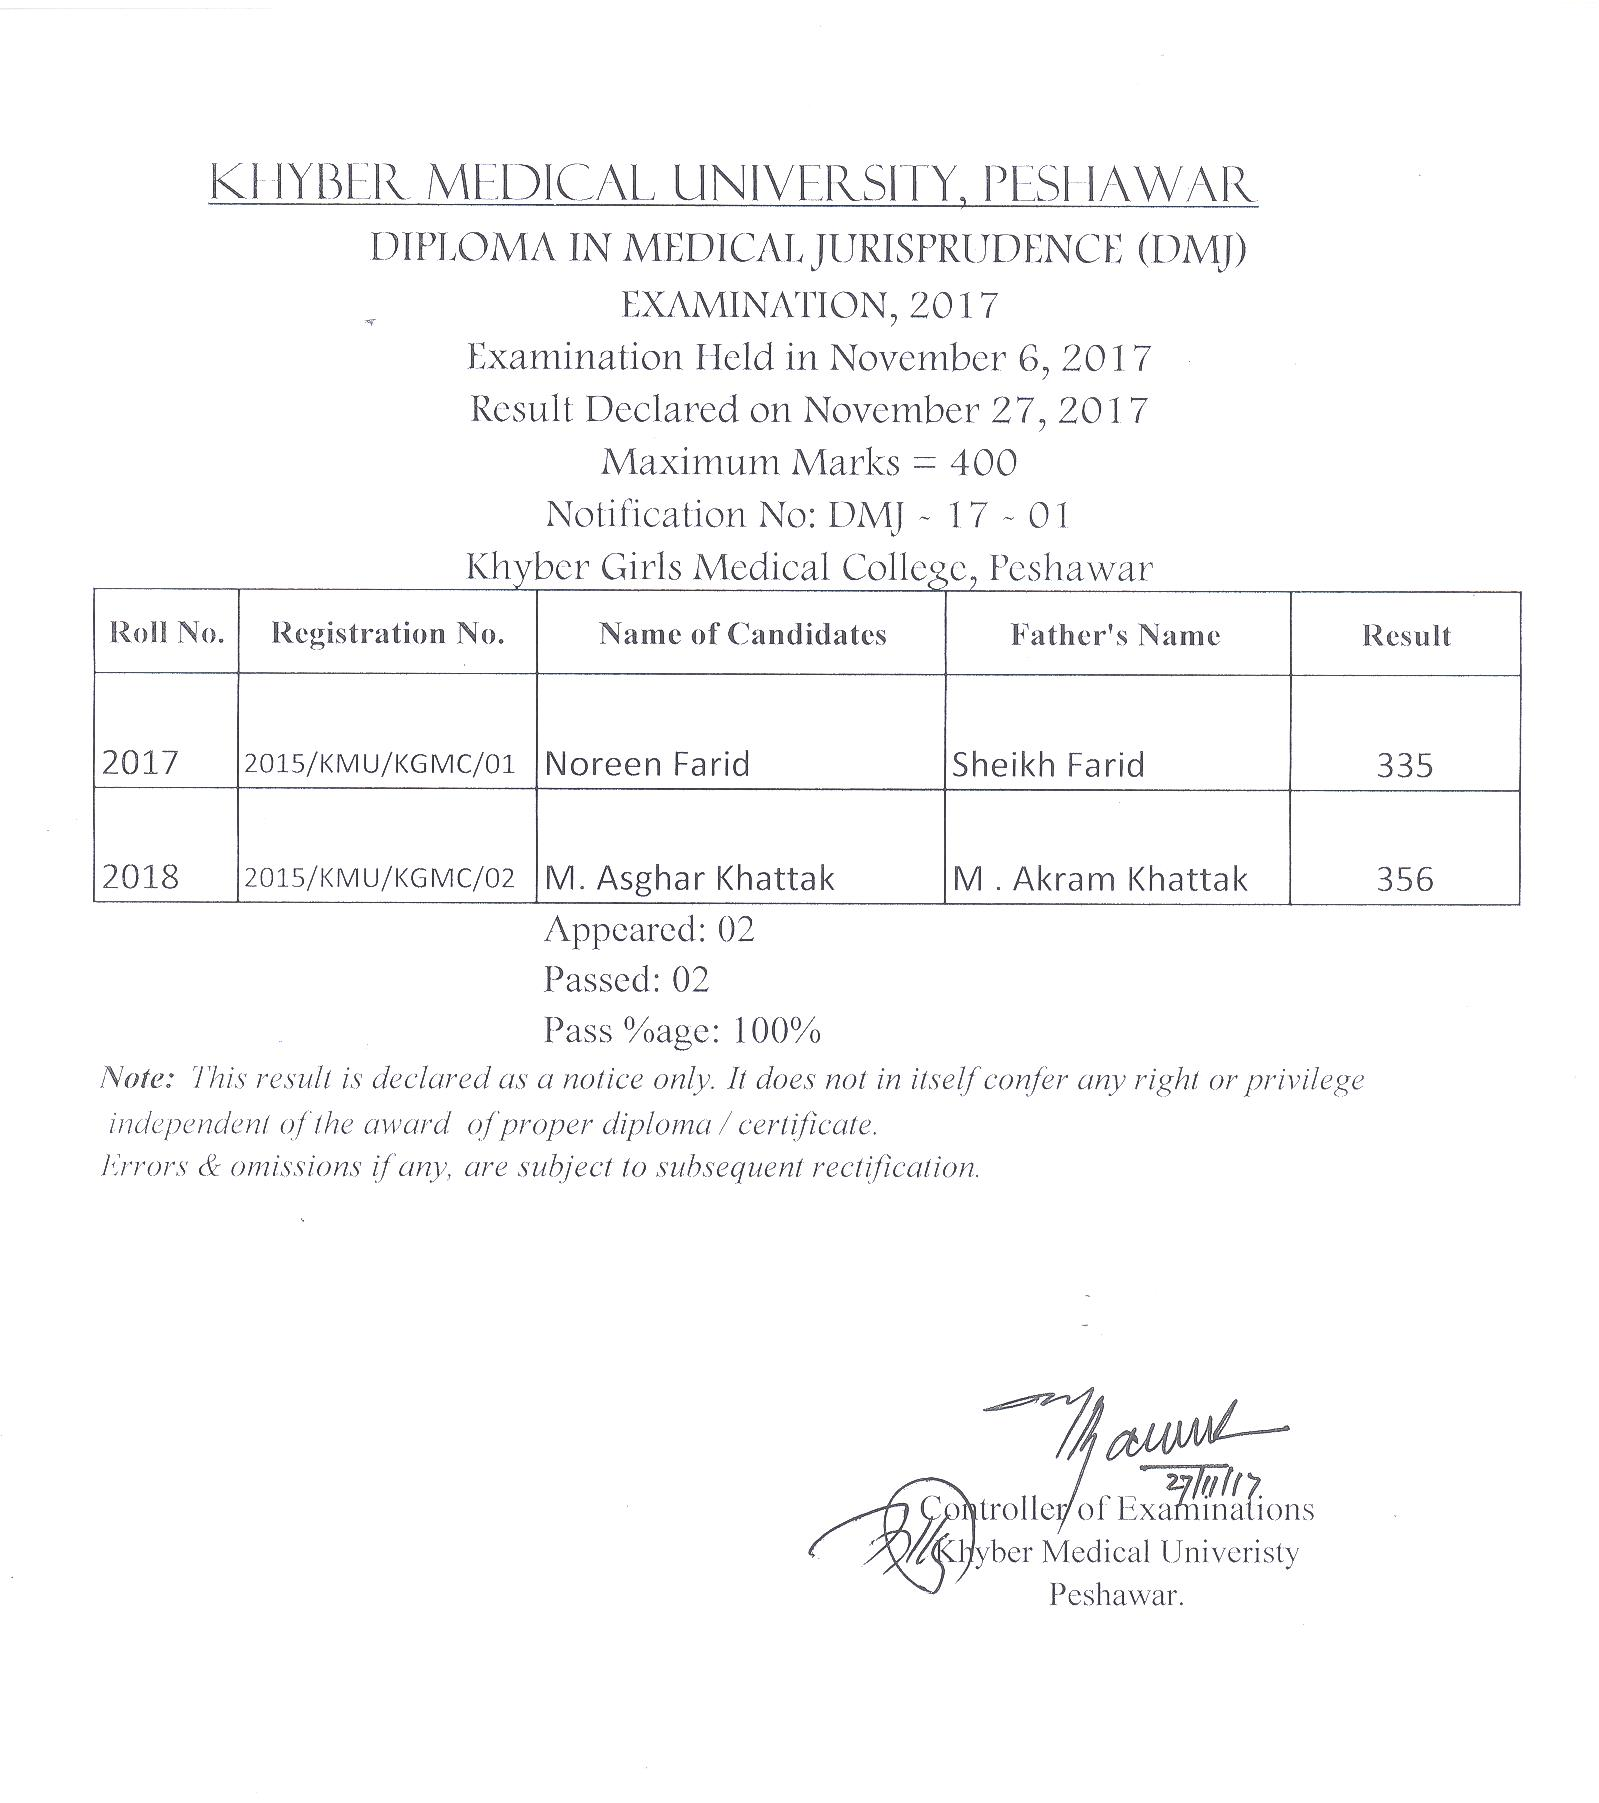 Doctor of Physical Therapy (DPT) | Khyber Medical University